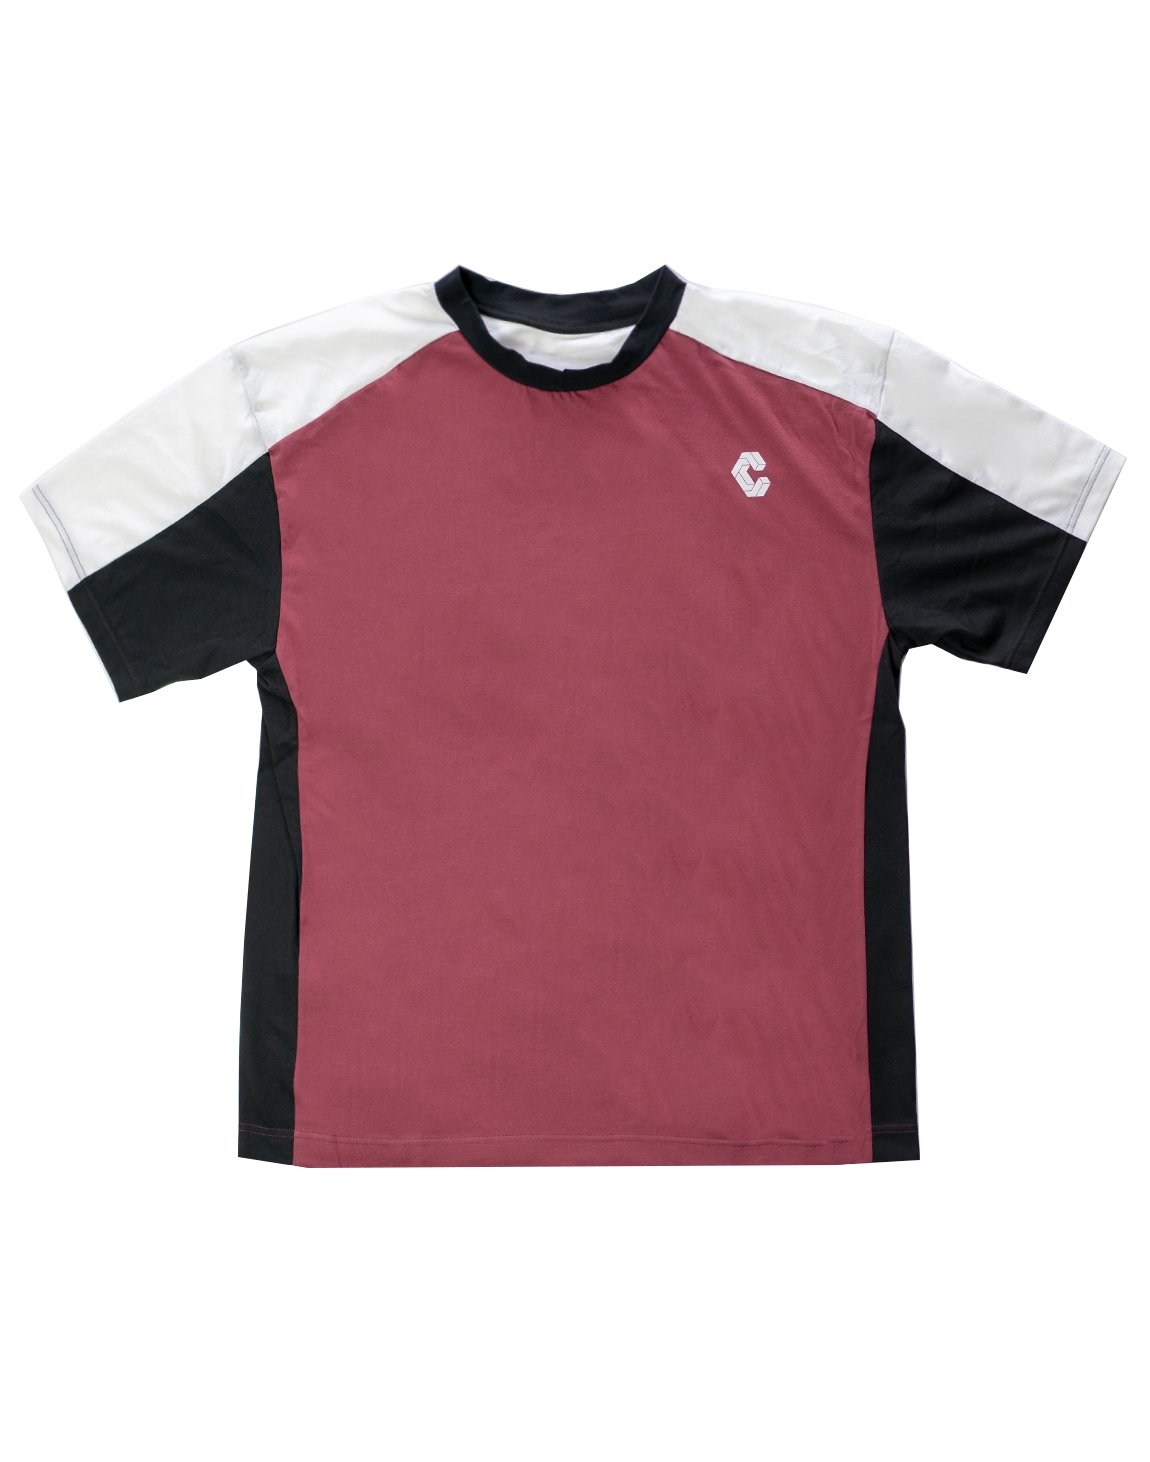 <img class='new_mark_img1' src='https://img.shop-pro.jp/img/new/icons1.gif' style='border:none;display:inline;margin:0px;padding:0px;width:auto;' />CRONOS BACK LOGO OVER SIZE  T-SHIRT RED